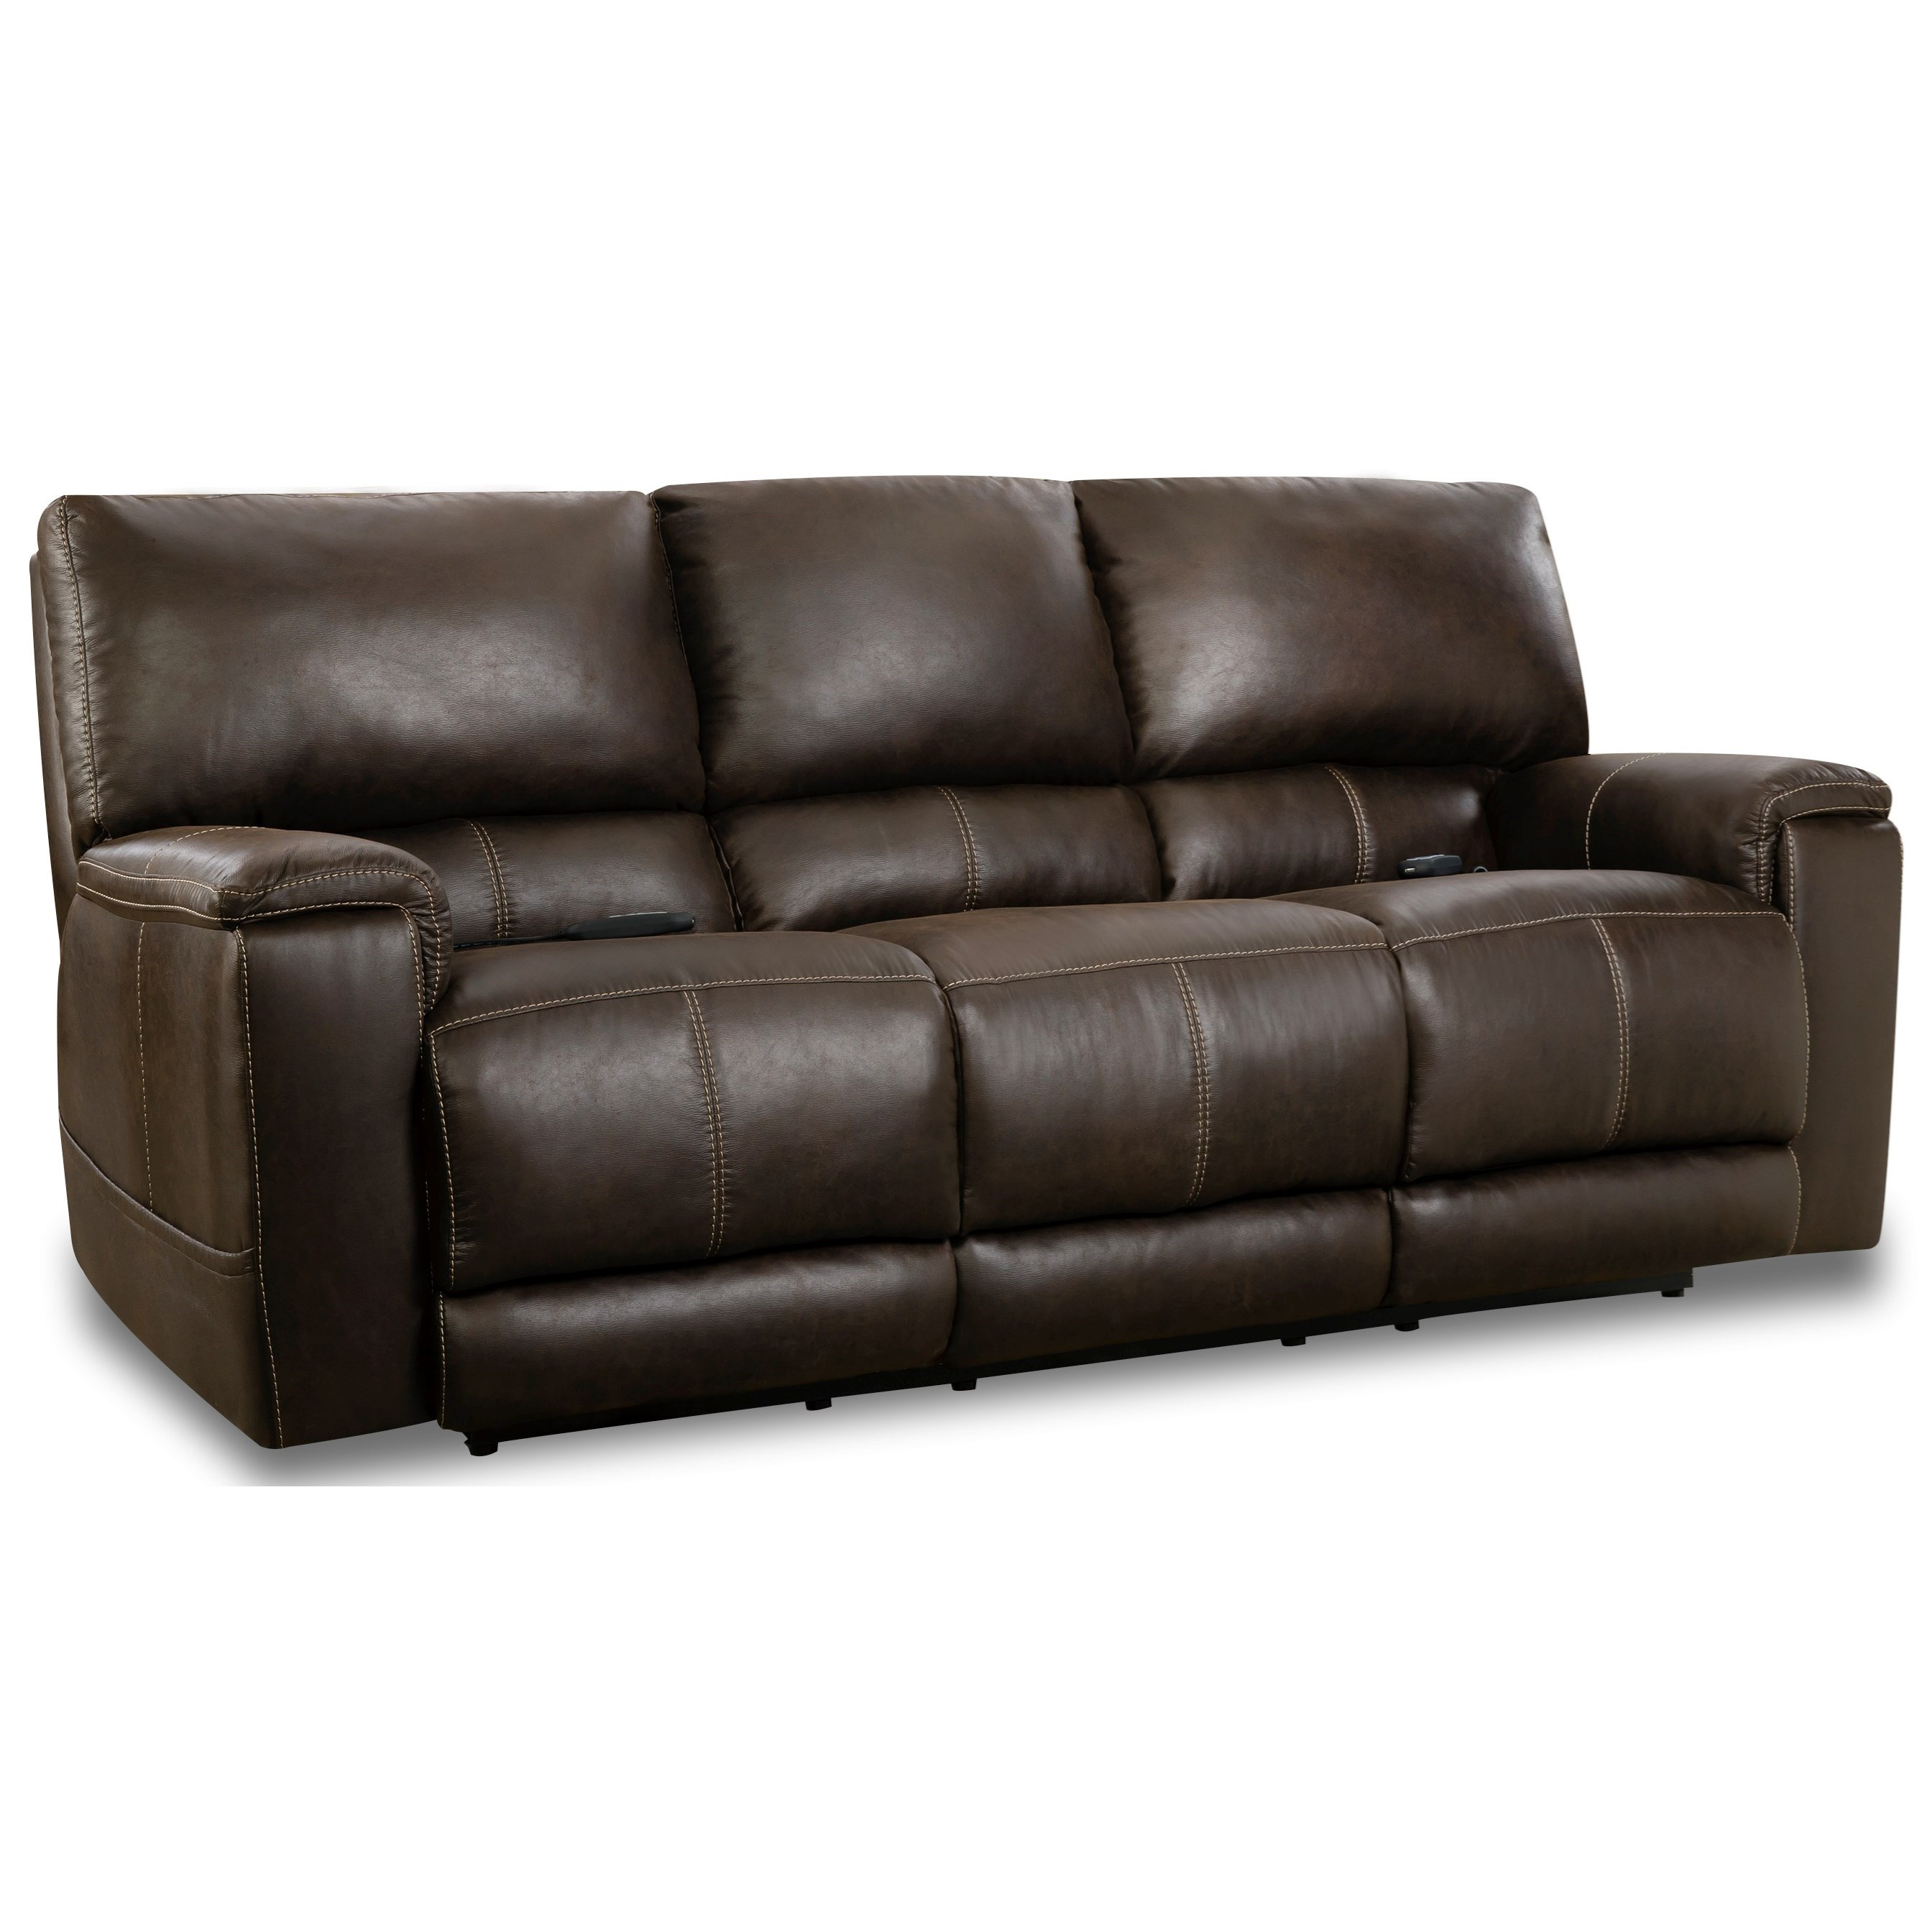 197 Collection Double Reclining Power Sofa  at Prime Brothers Furniture